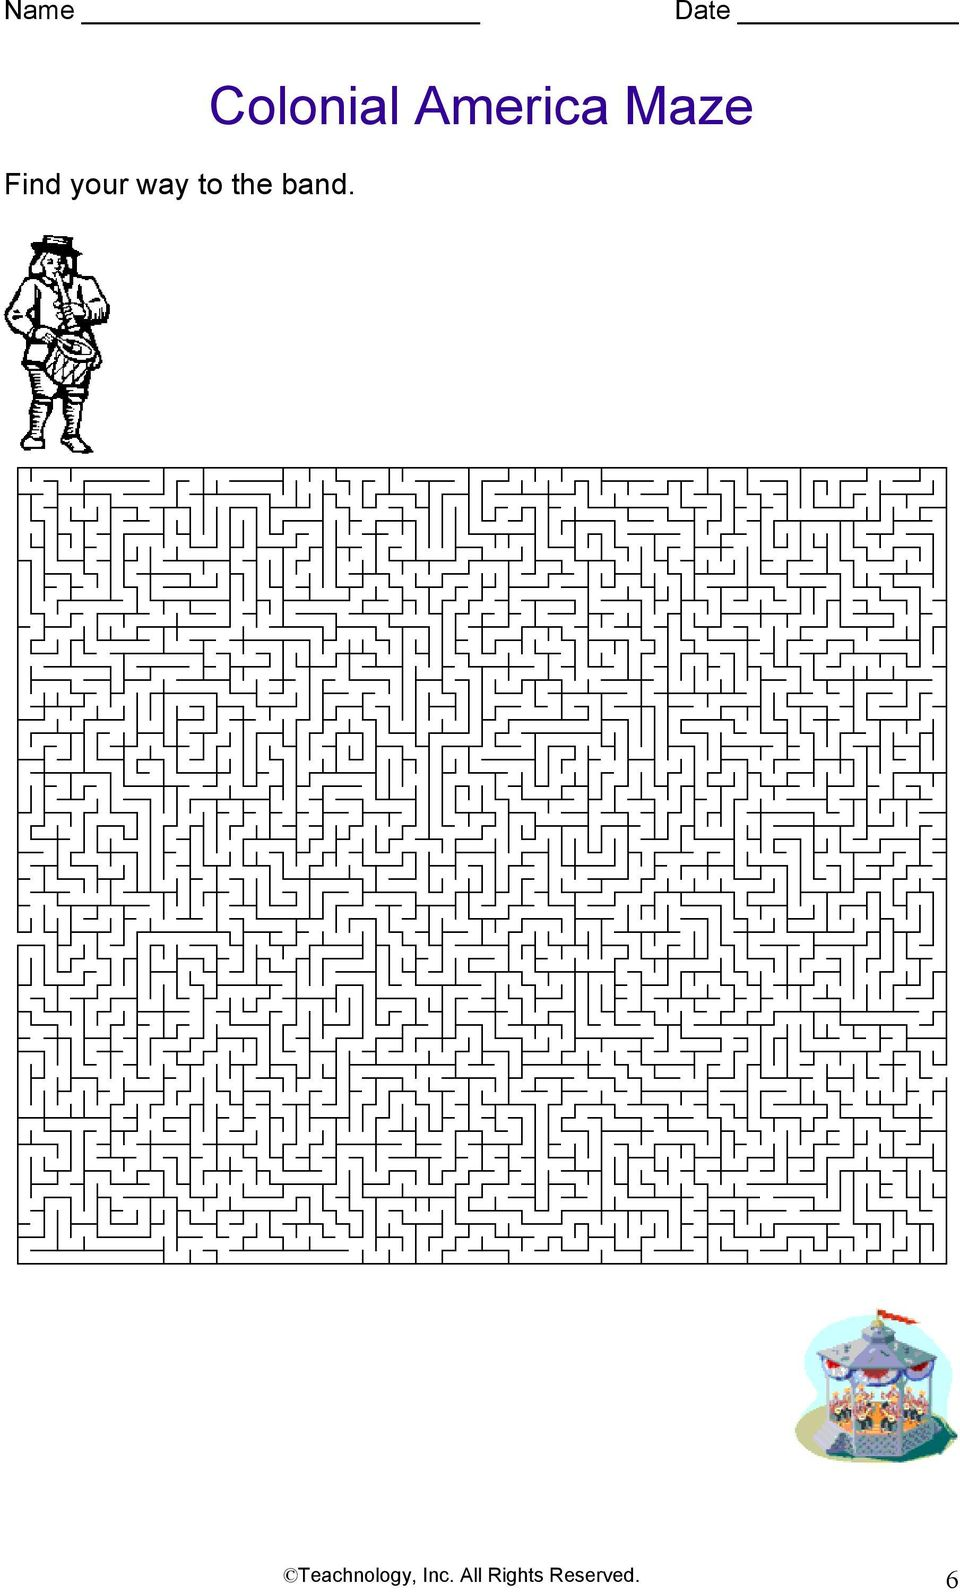 Maze Teachnology, Inc.